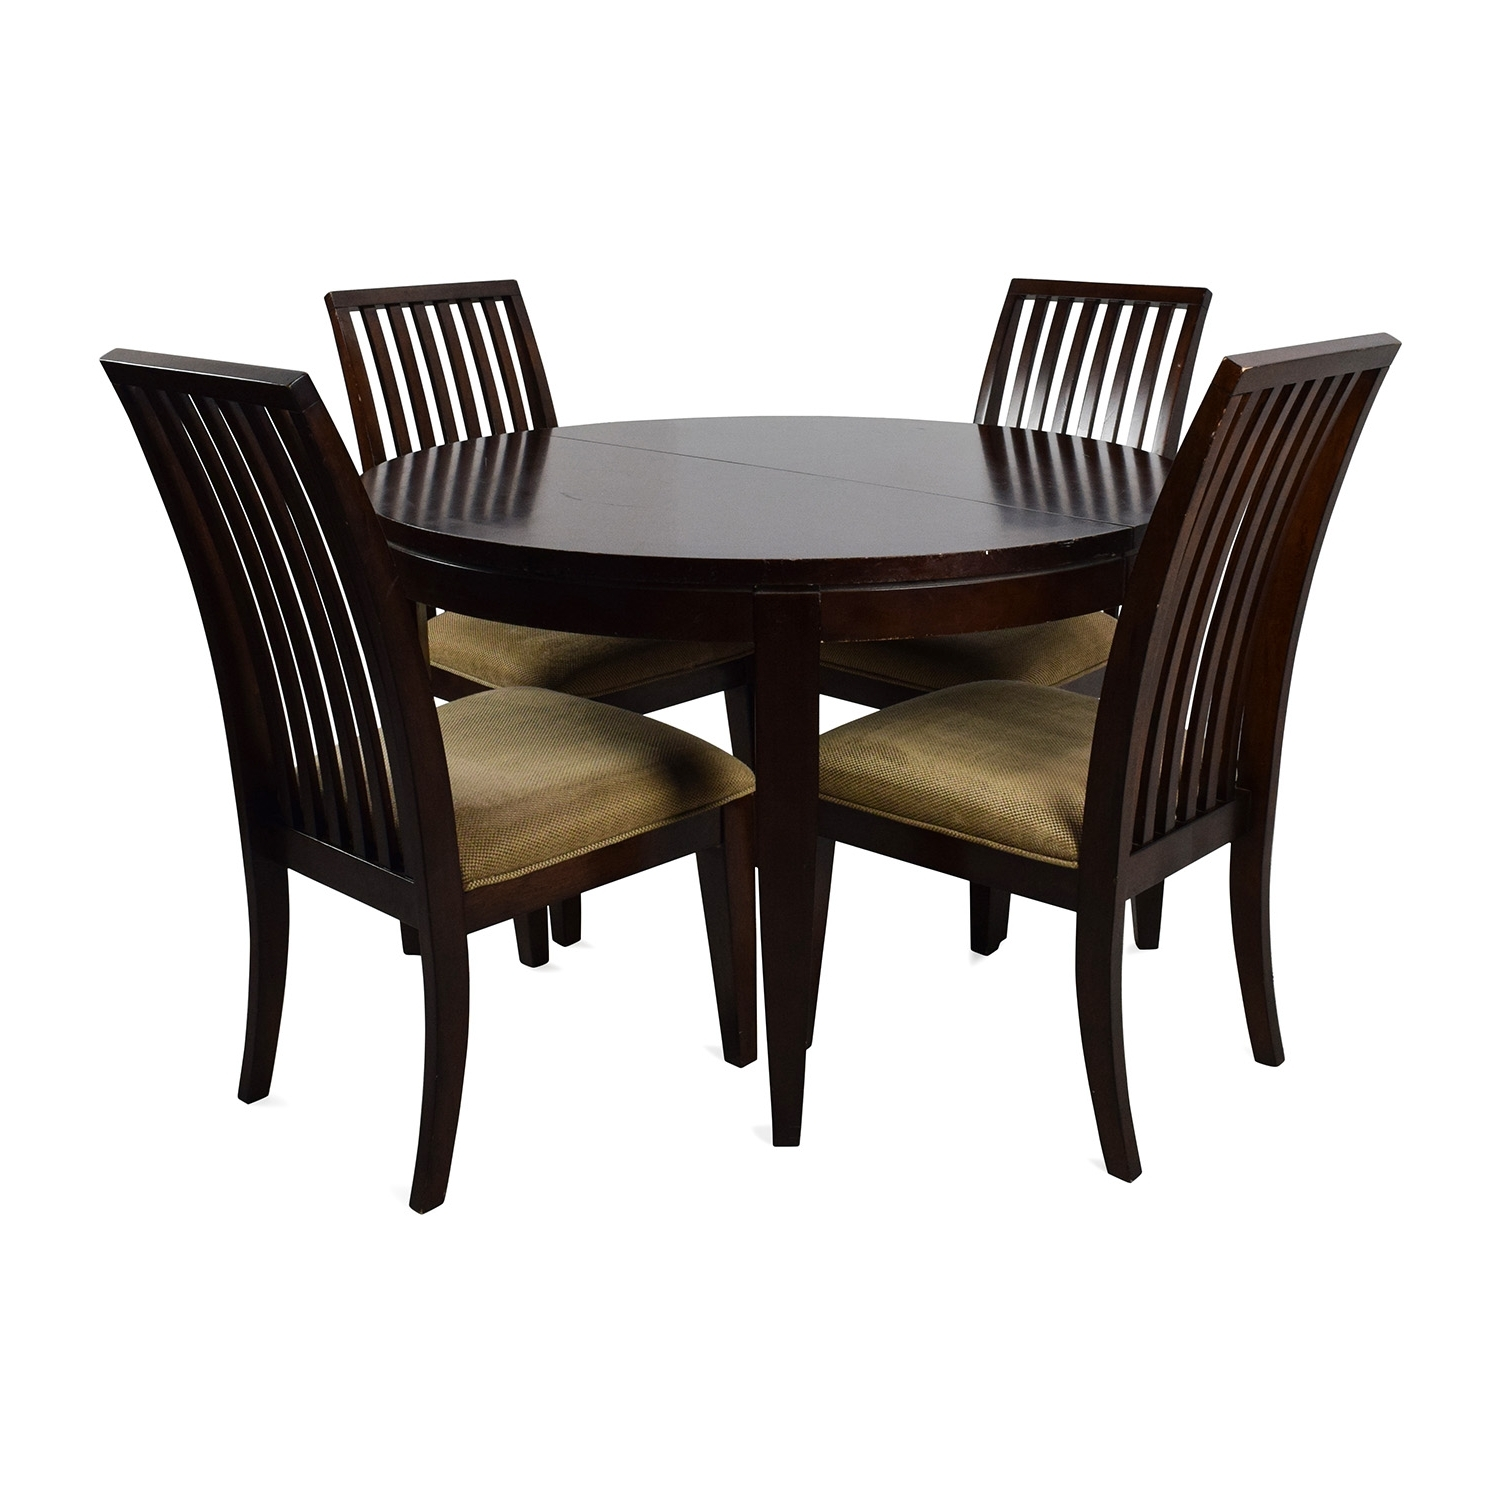 [%75% Off – Macy's Macy's Bradford Extendable Dining Table With 4 Intended For Famous Bradford Dining Tables|Bradford Dining Tables Regarding Famous 75% Off – Macy's Macy's Bradford Extendable Dining Table With 4|Most Current Bradford Dining Tables Within 75% Off – Macy's Macy's Bradford Extendable Dining Table With 4|Recent 75% Off – Macy's Macy's Bradford Extendable Dining Table With 4 Within Bradford Dining Tables%] (View 1 of 25)